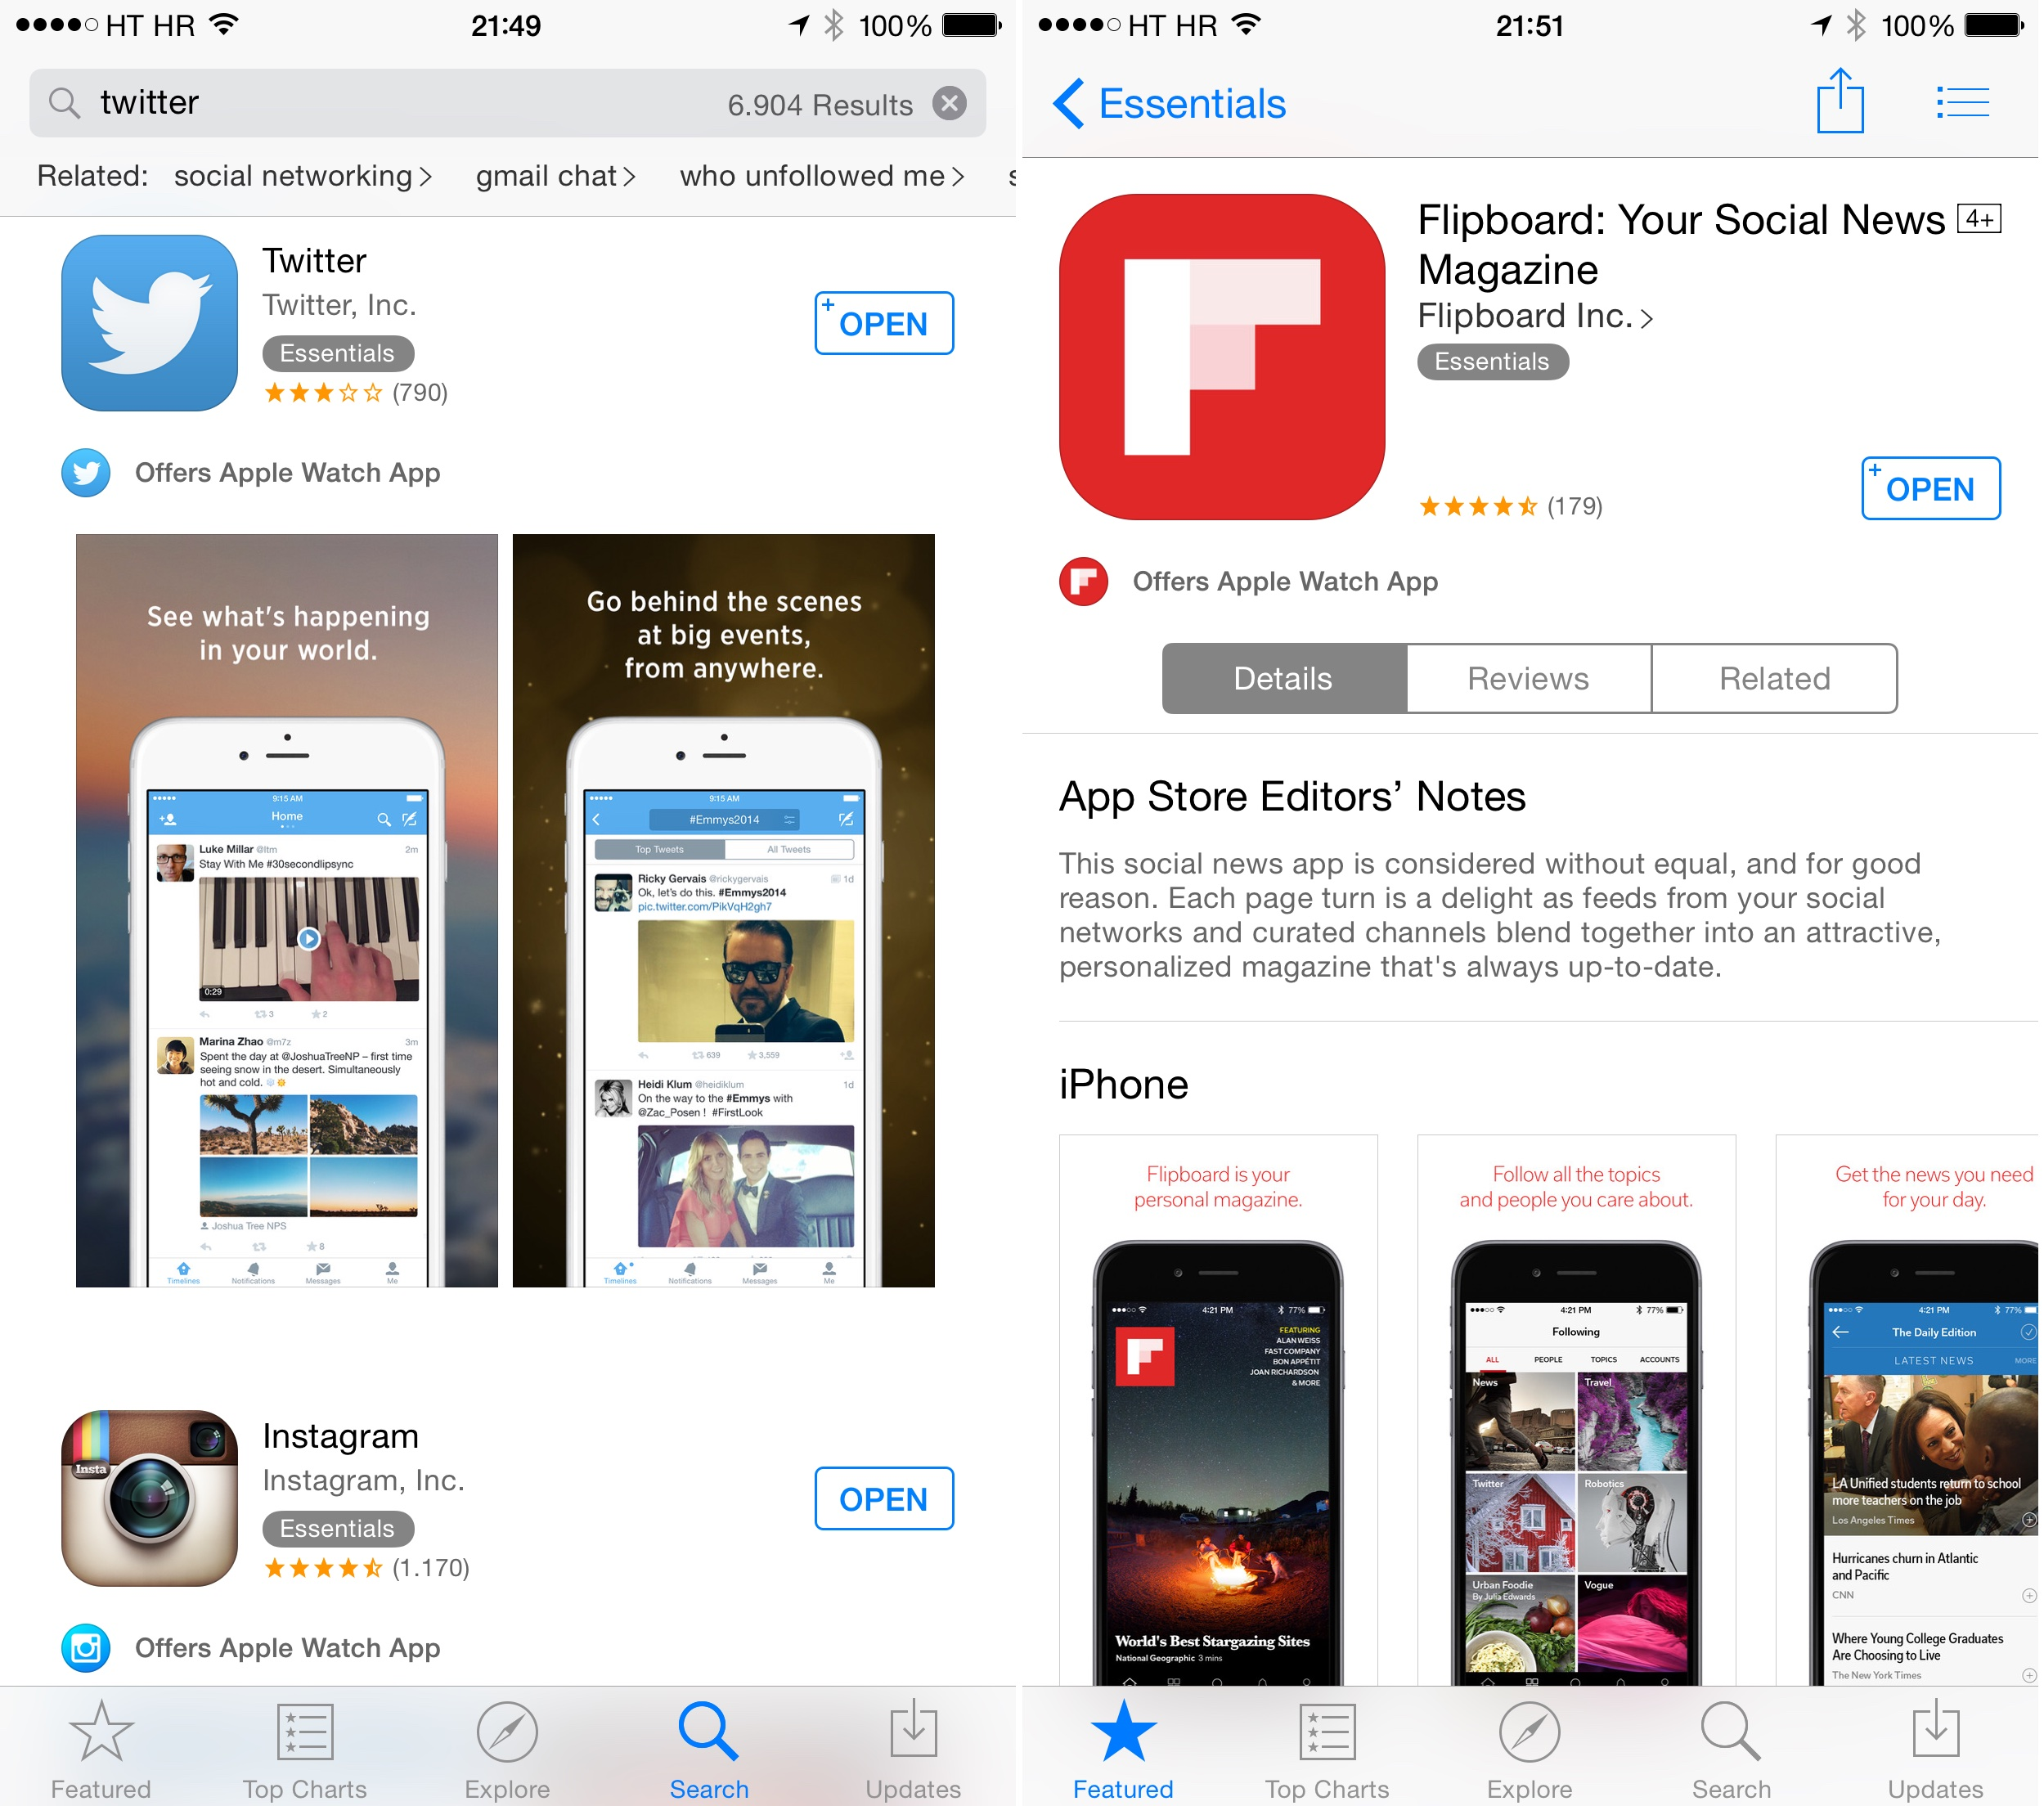 'offers Apple Watch App' Label Added To App Store